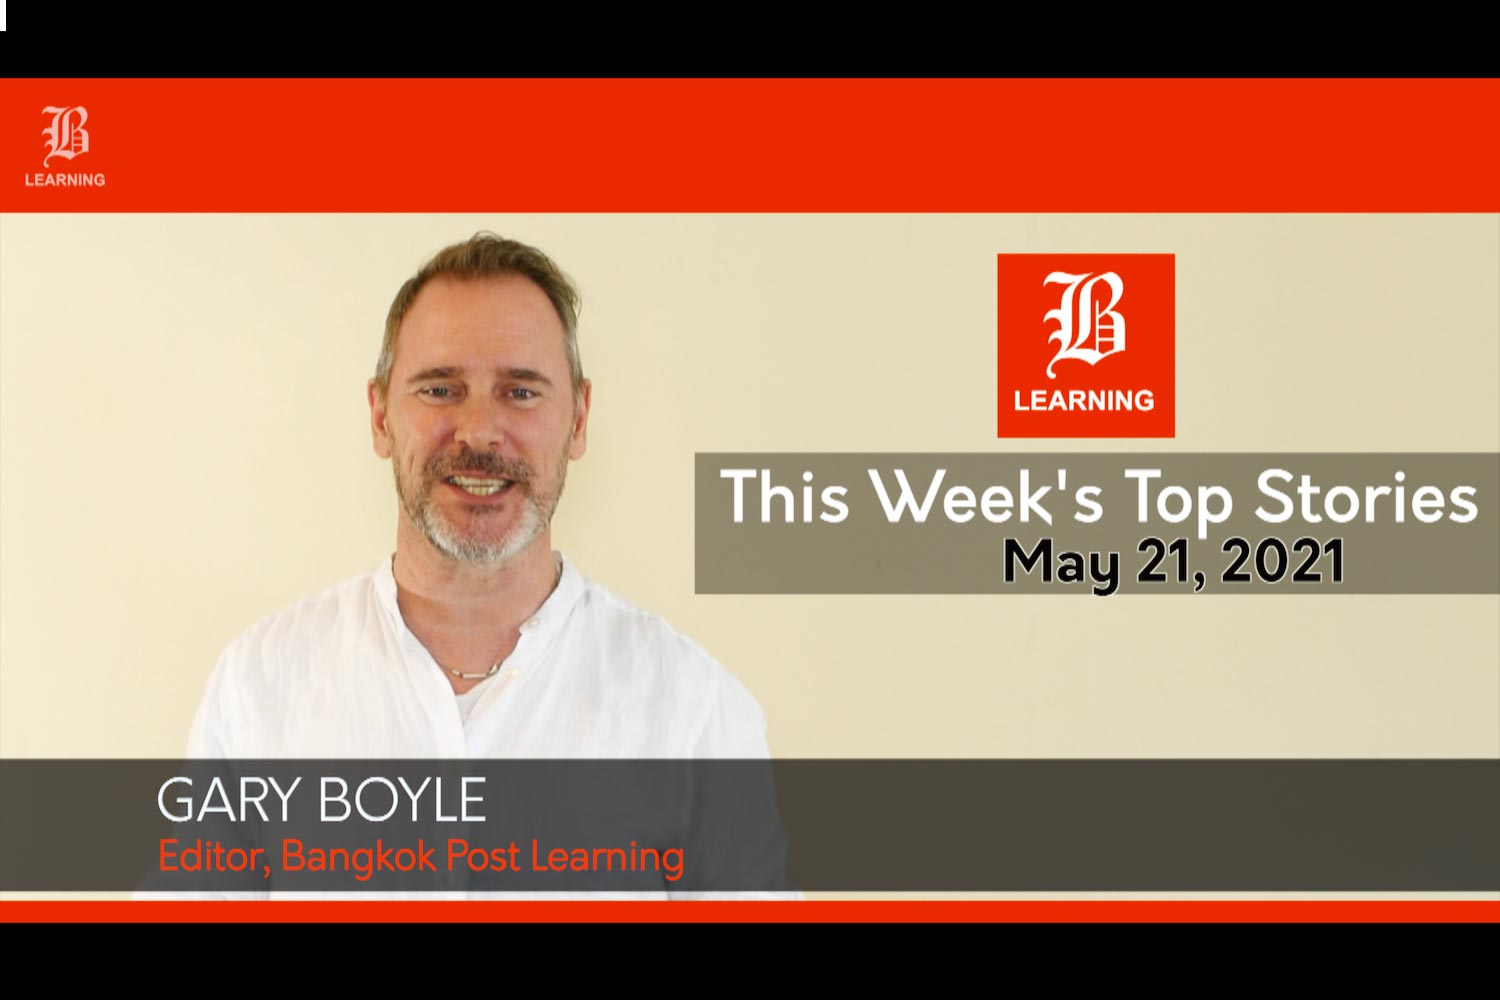 This week's top stories: May 21, 2021